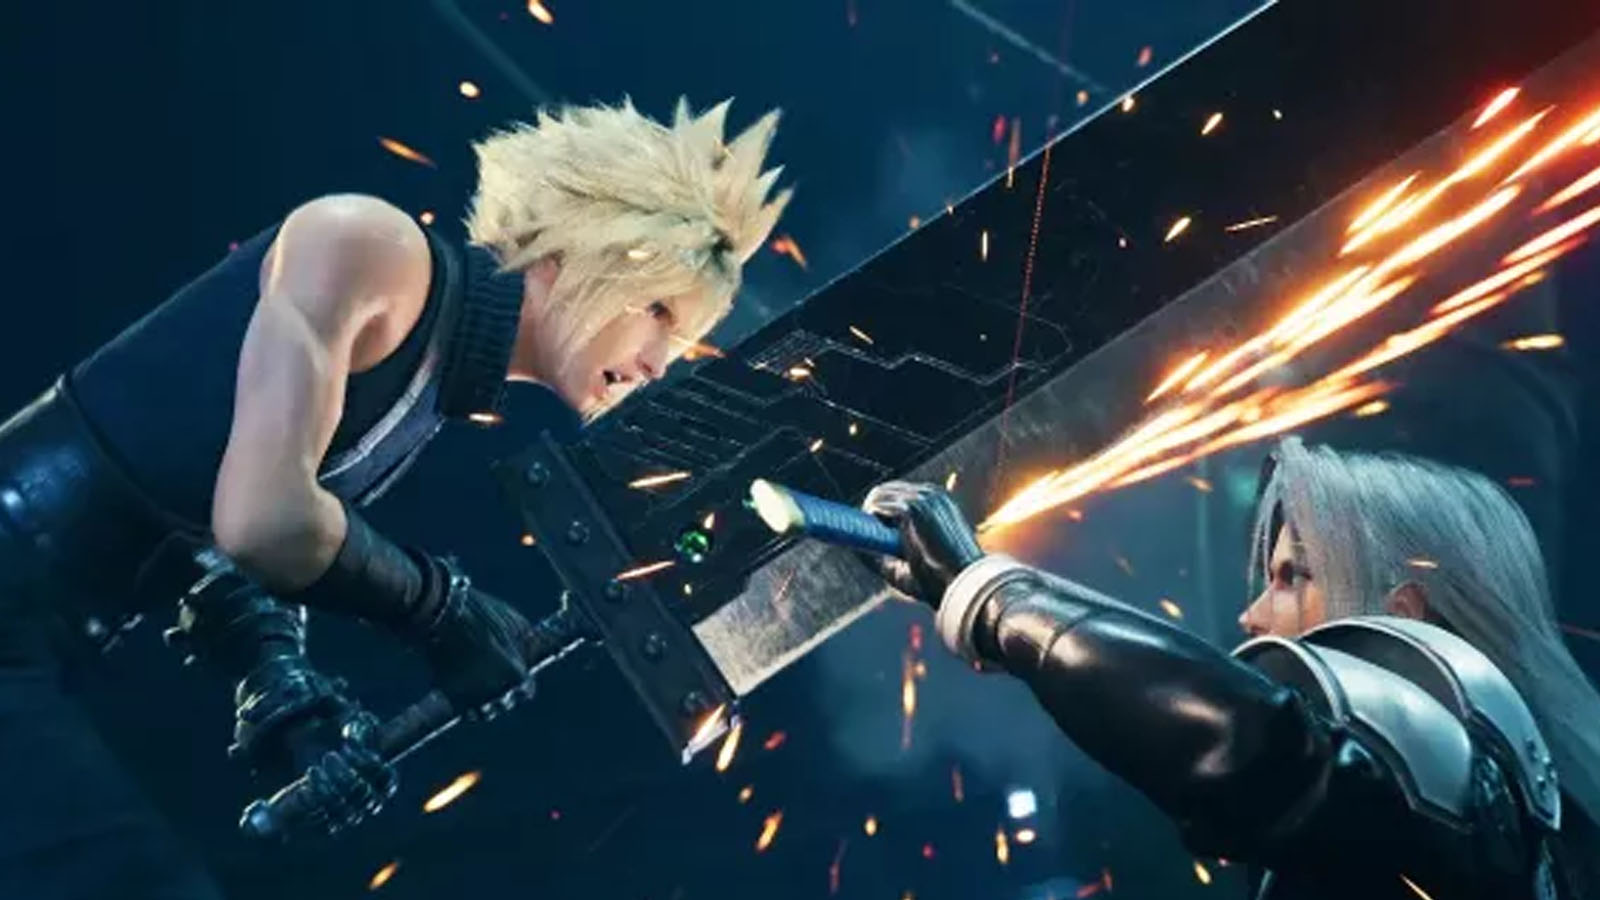 Cloud y Sephiroth en Final Fantasy 7 Remake